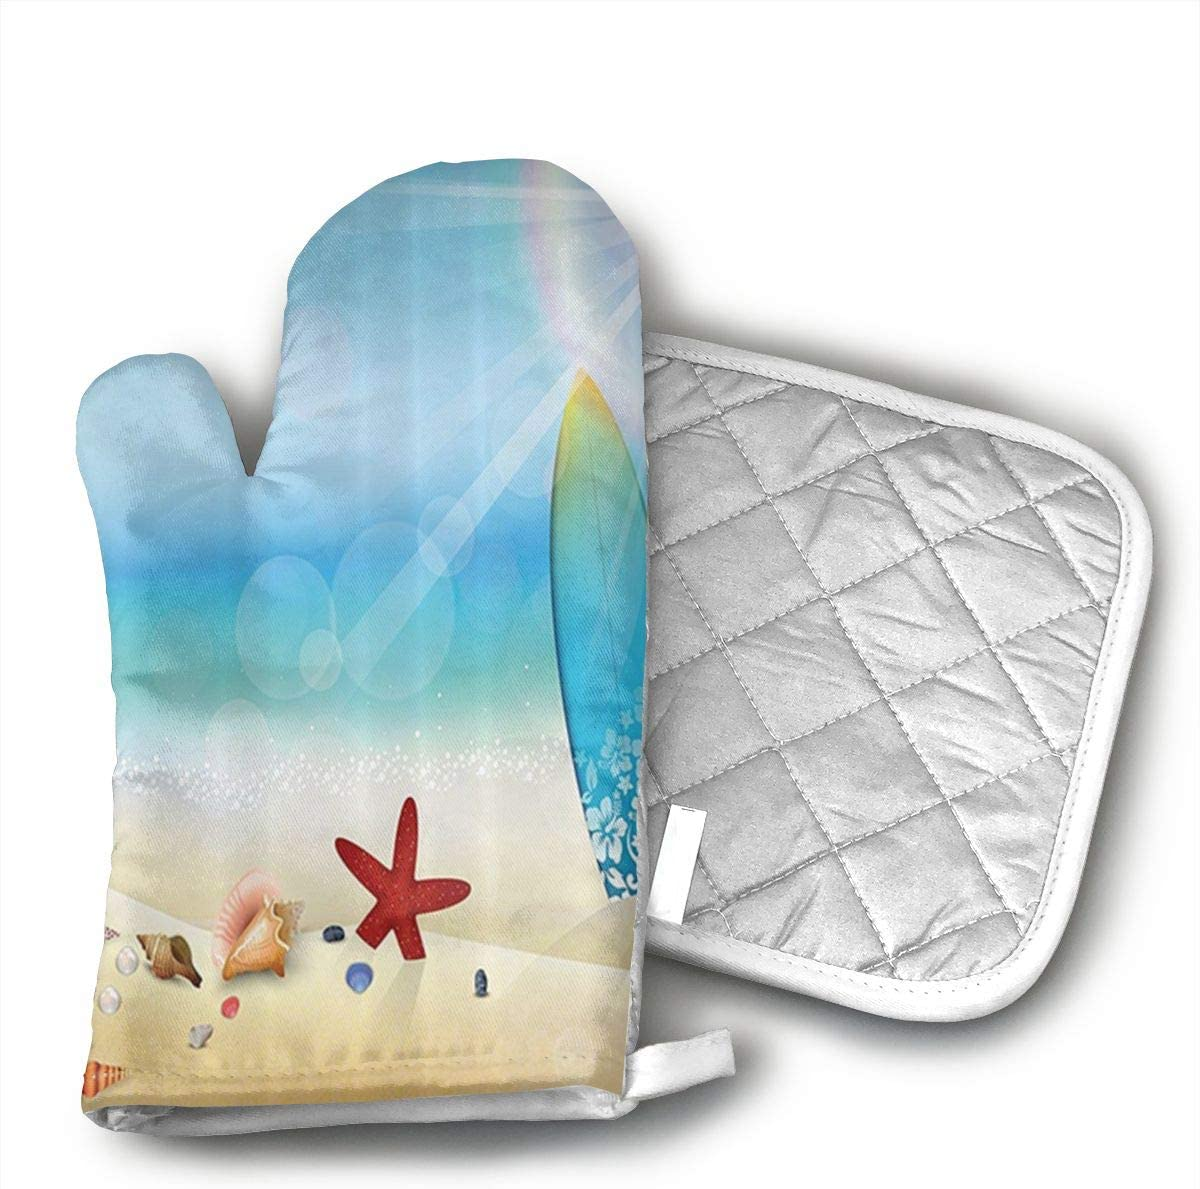 CHWEYAQ Seashells Sunglasses On The Sand Beach Summer Surfboard Starfish Oven Mitts,Professional Heat Resistant Microwave Oven Insulation Thickening Gloves Soft Inner Lining Kitchen Cooking Mittens